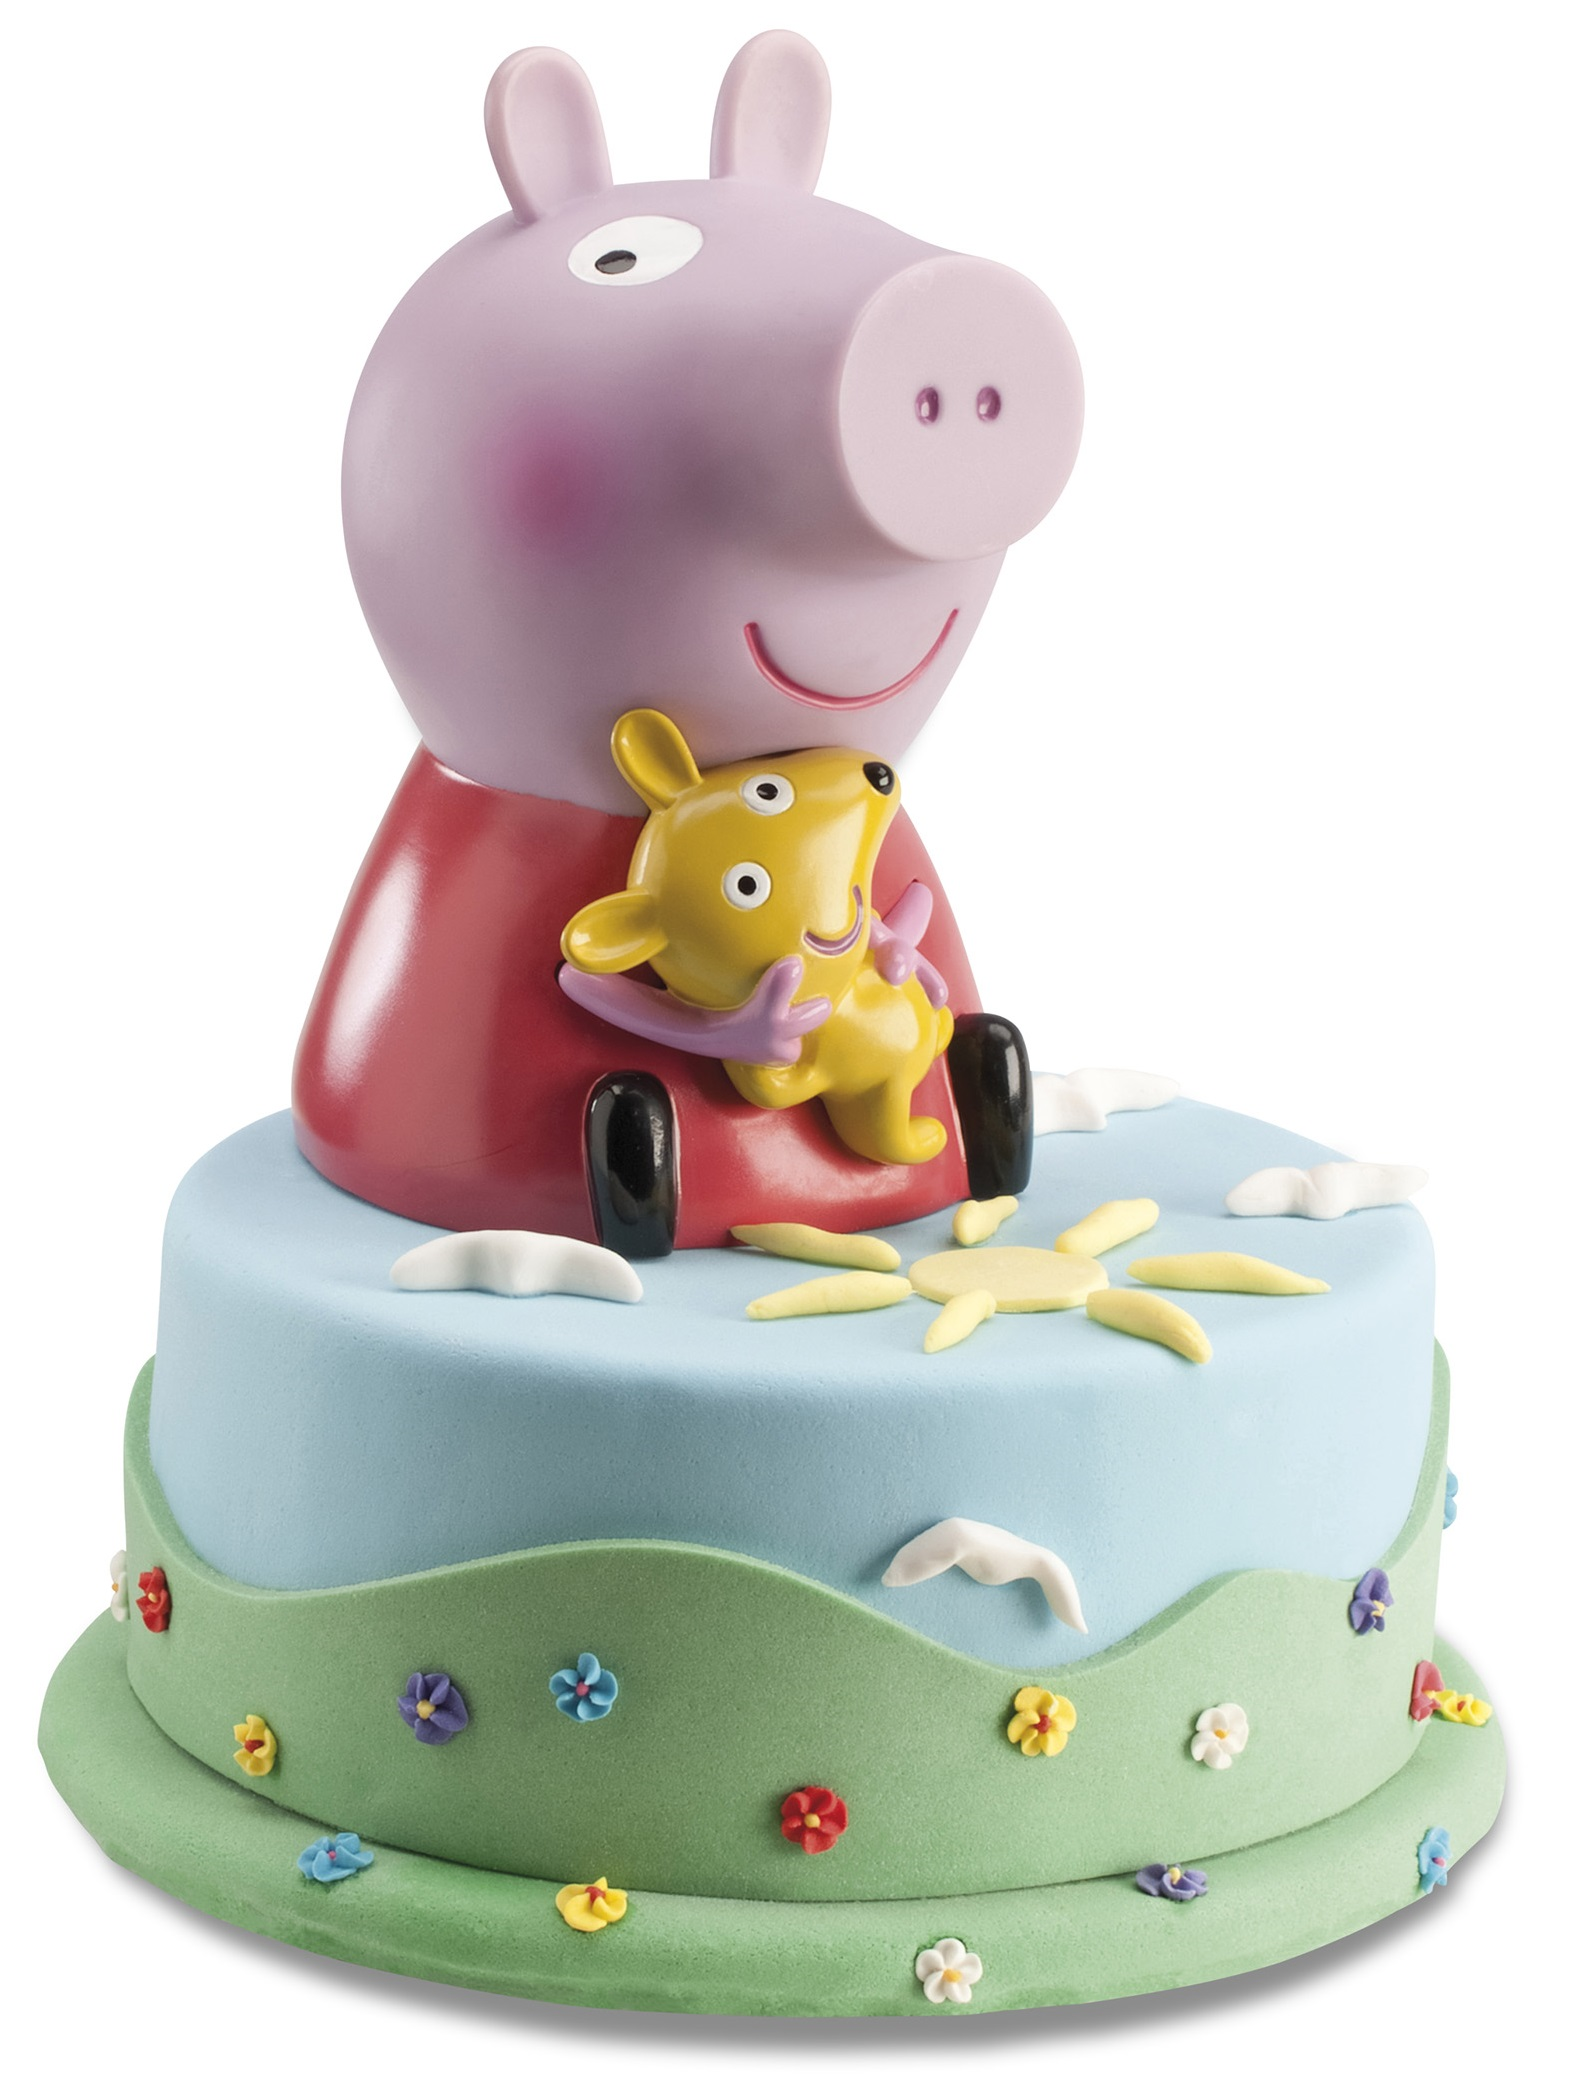 Legalised Peppa Pig Cake with Coin Bank